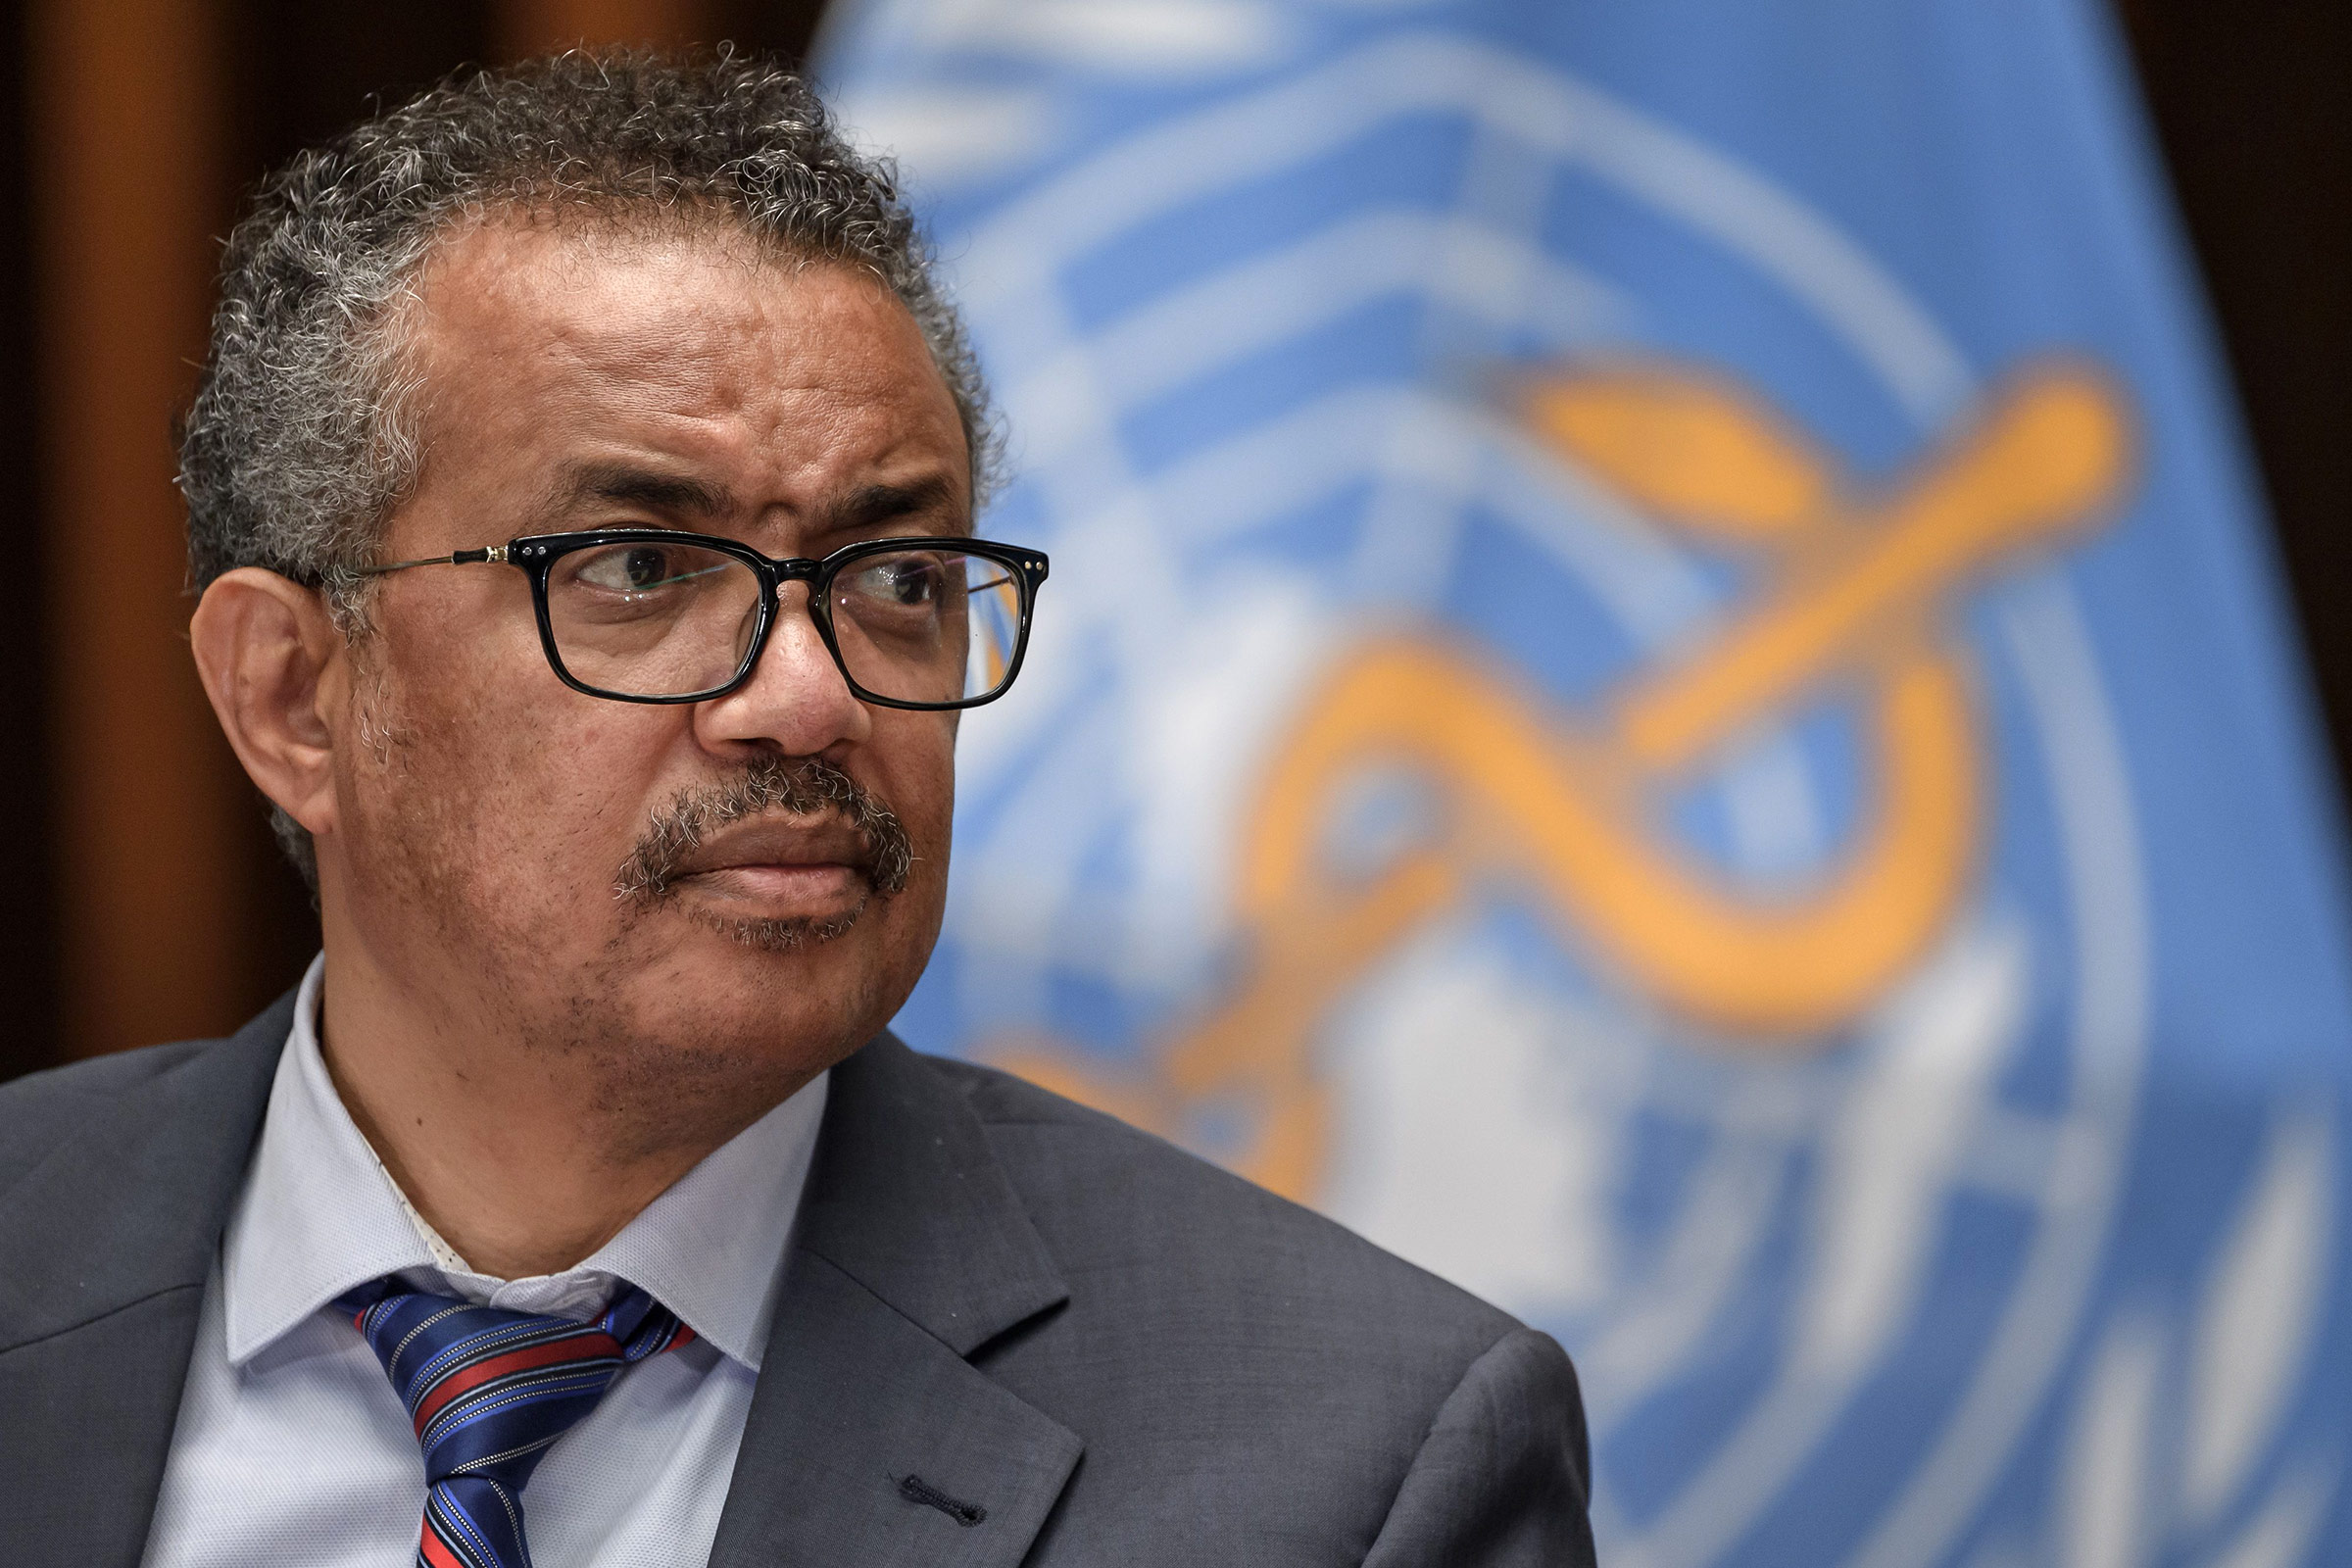 World Health Organization (WHO) Director-General Tedros Adhanom Ghebreyesus attends a press conference on July 3, 2020, at the WHO headquarters in Geneva.